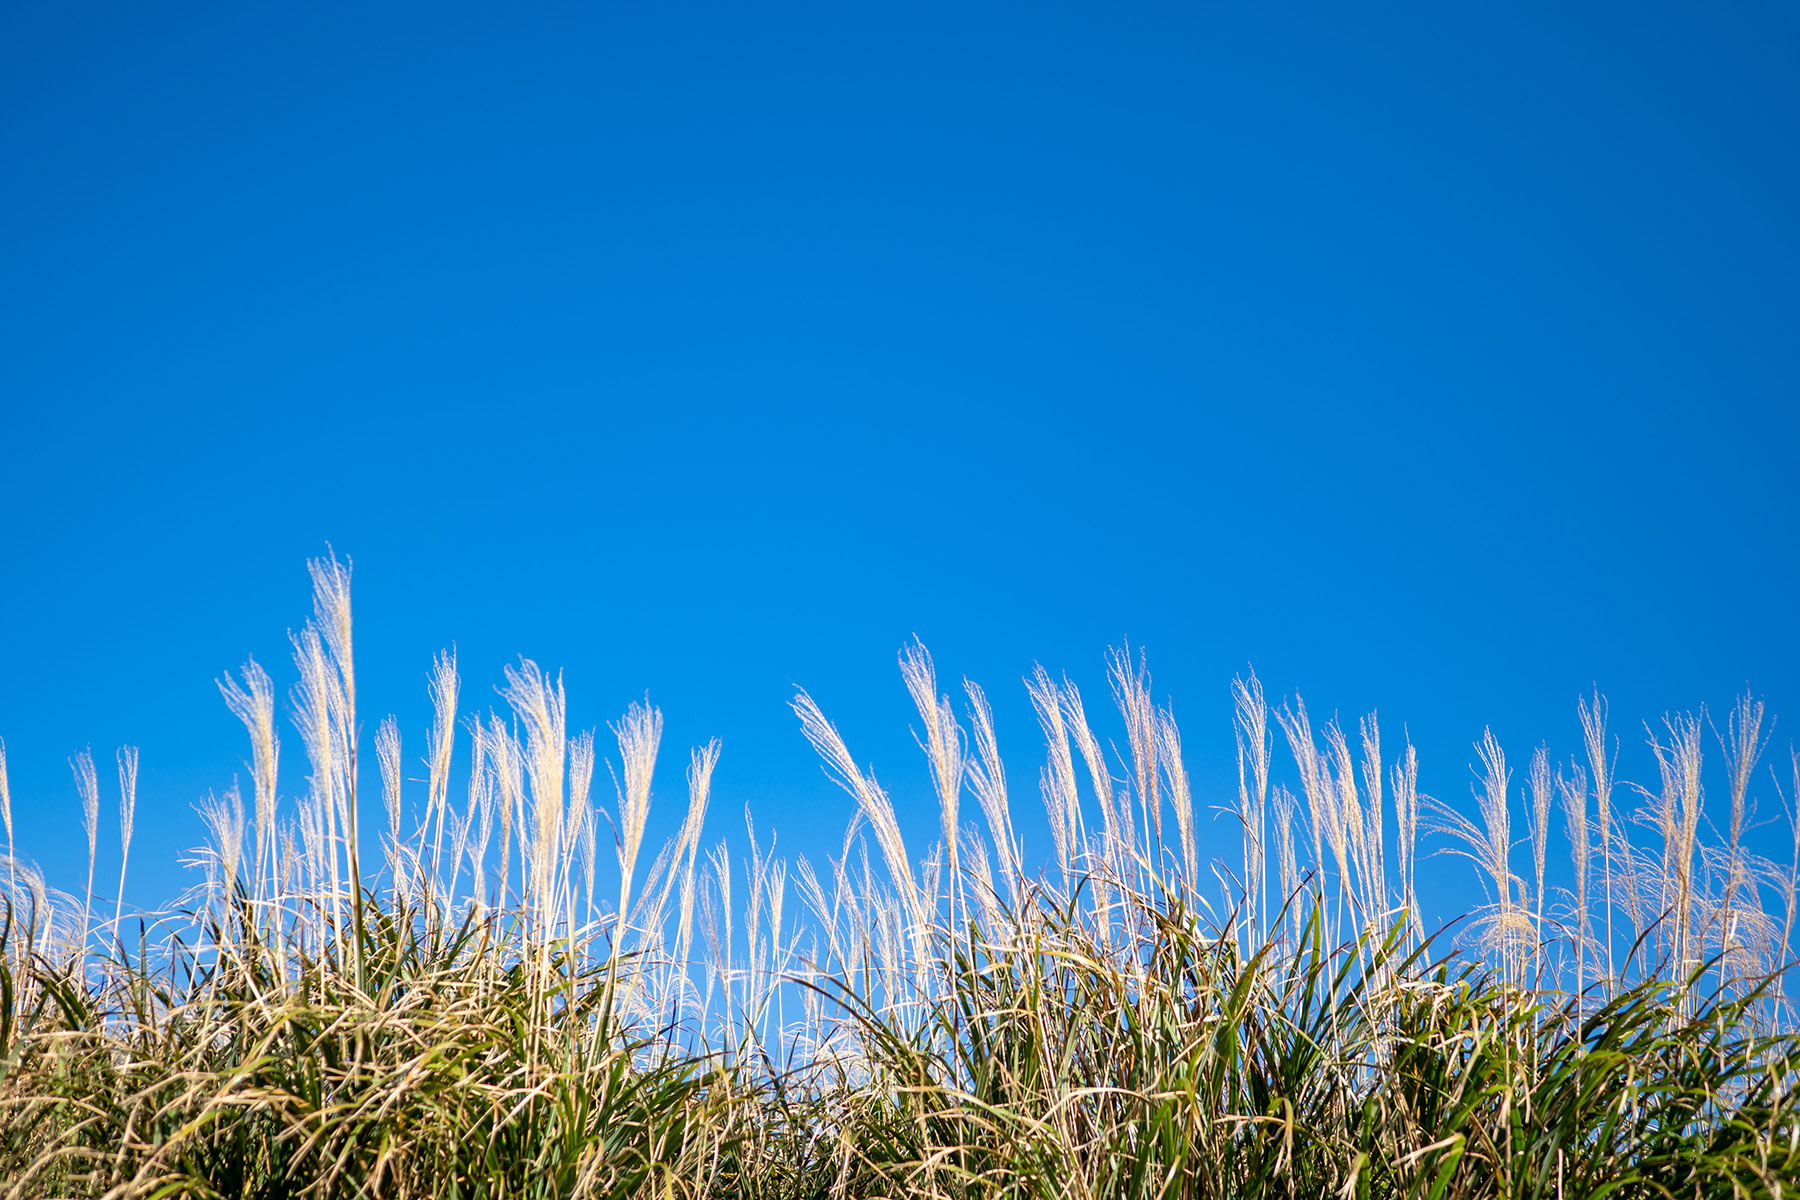 'Keep off the grass': the biofuel that could help us achieve net zero